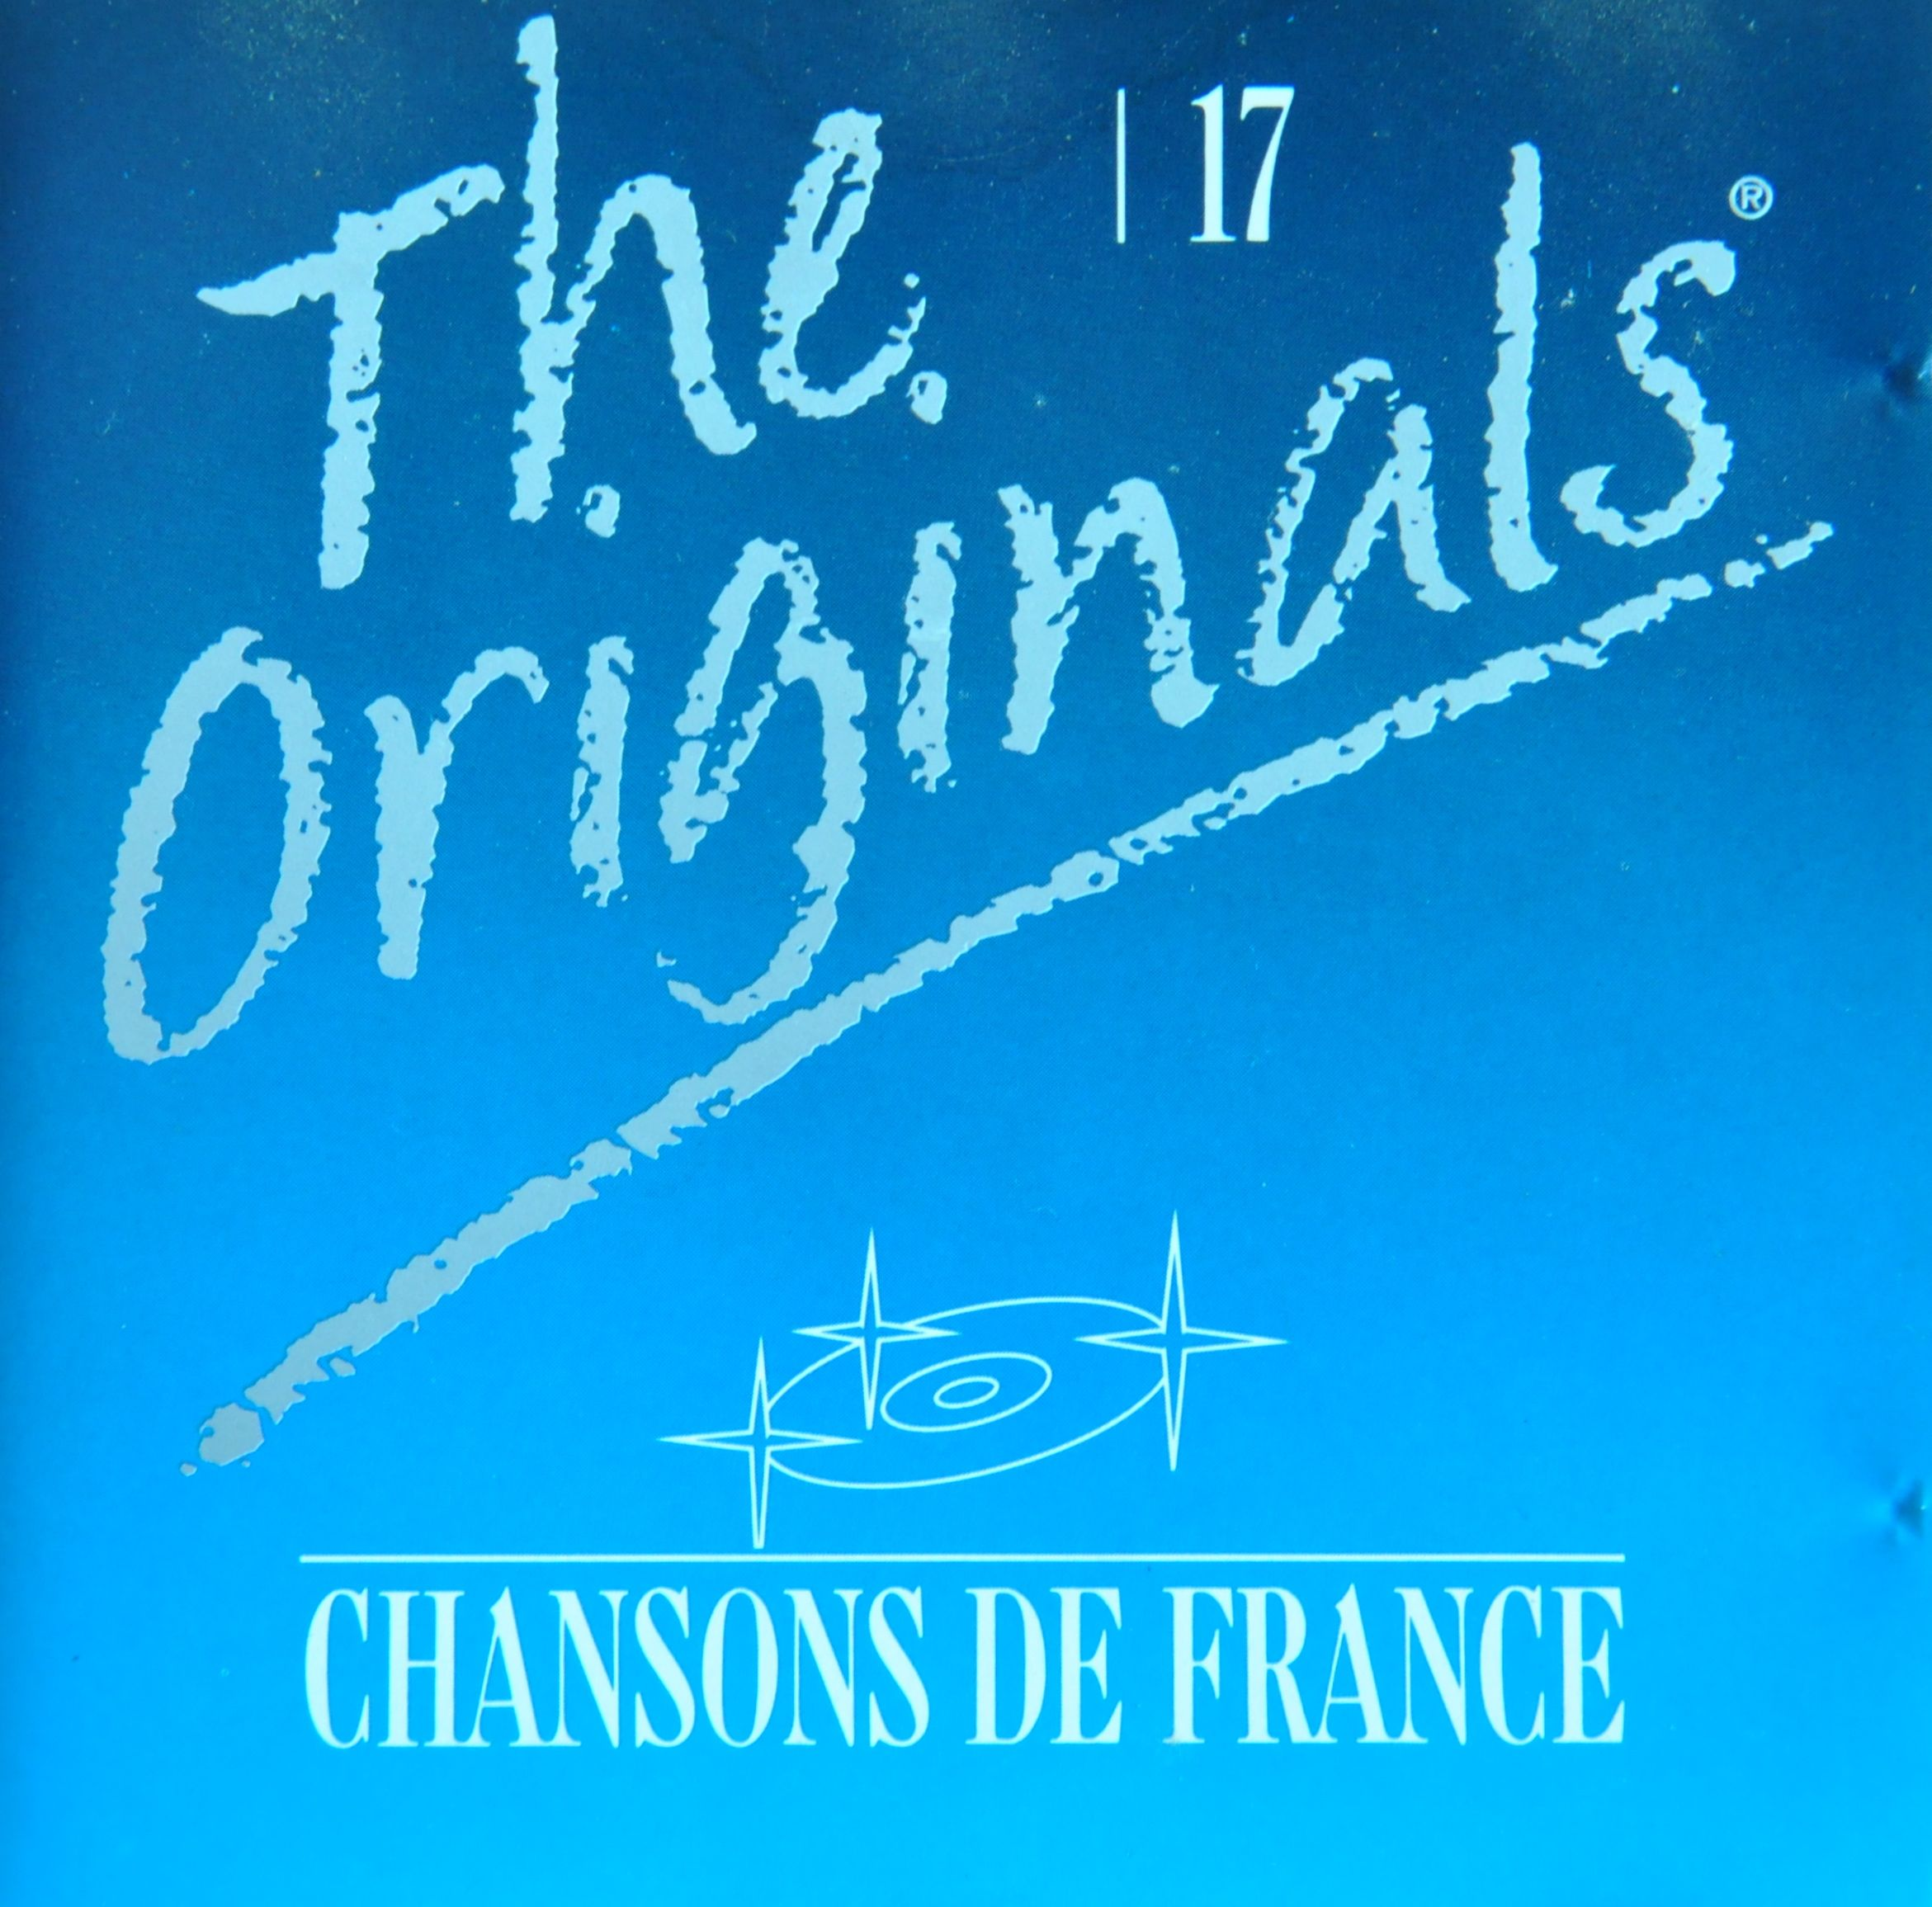 jaquettes2/The-Originals_17_Chansons-de-France.jpg